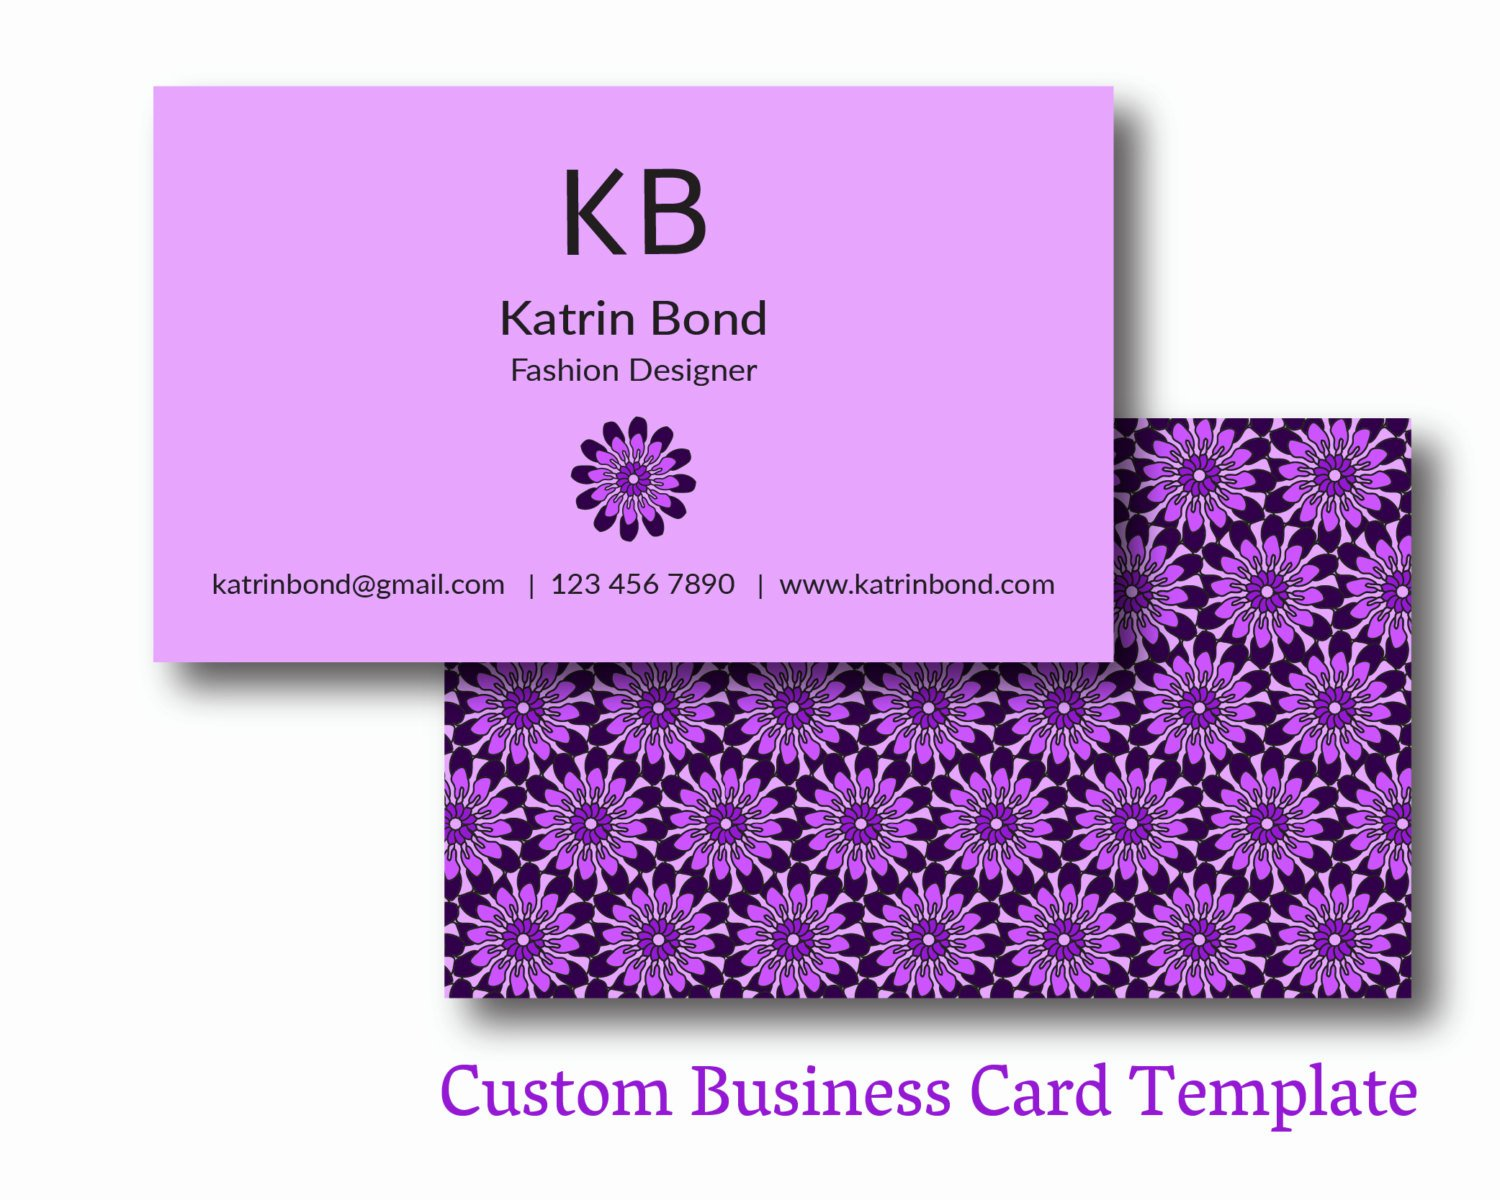 Business Card Sheet Template Inspirational Business Card Template Calling Cards Custom Business Cards